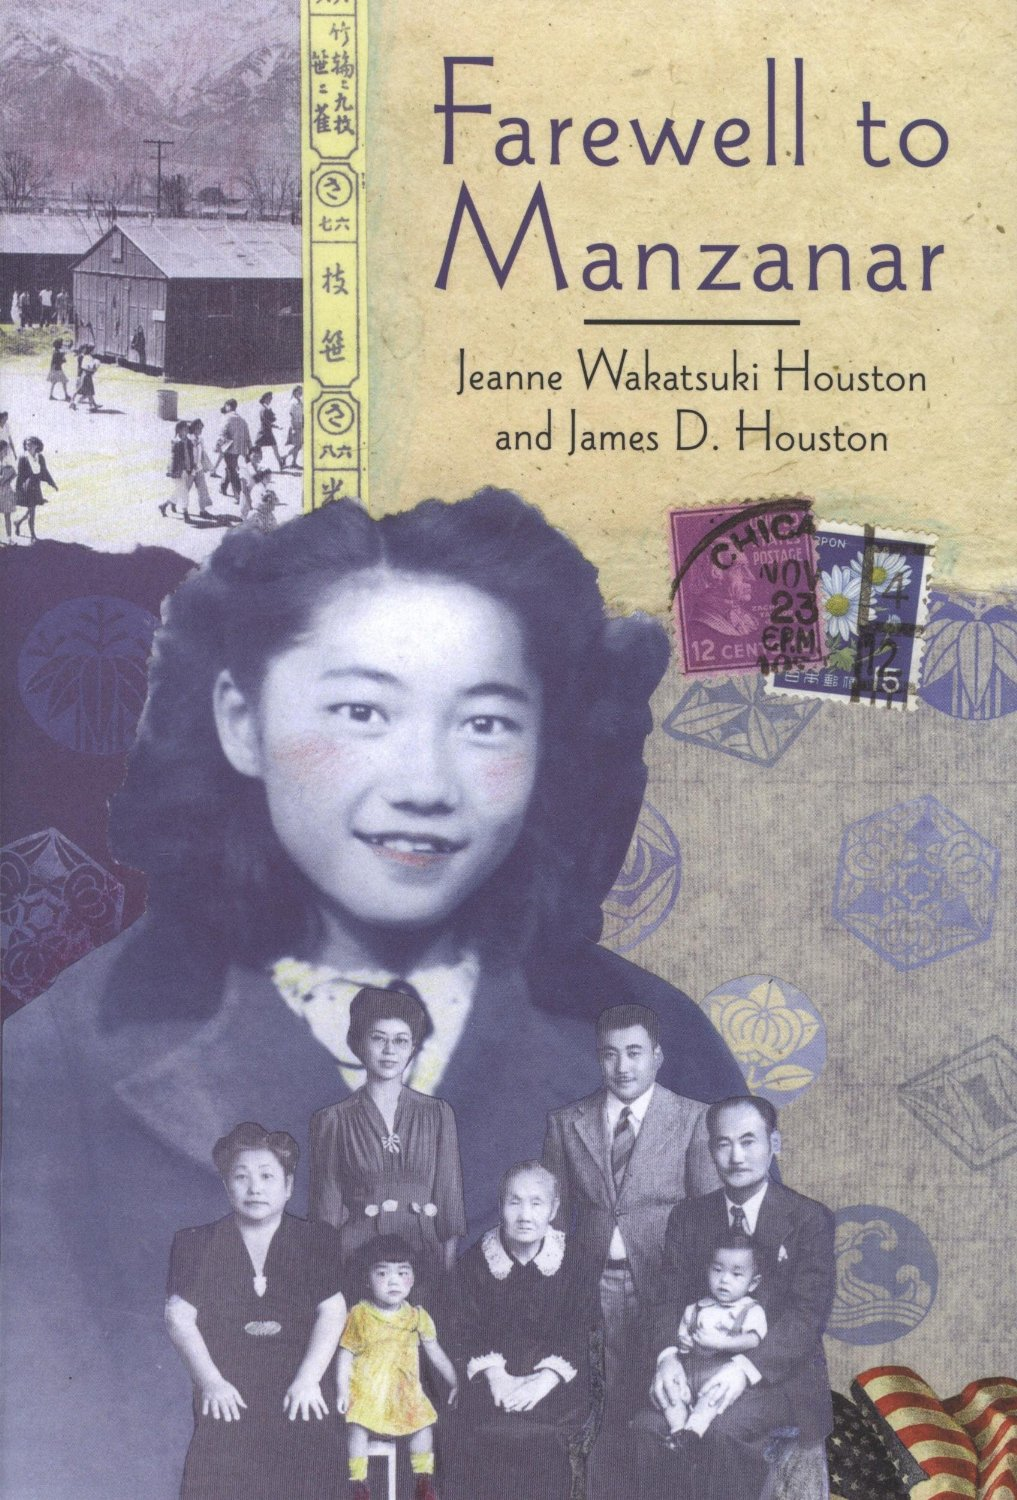 essay on farewell to manzanar